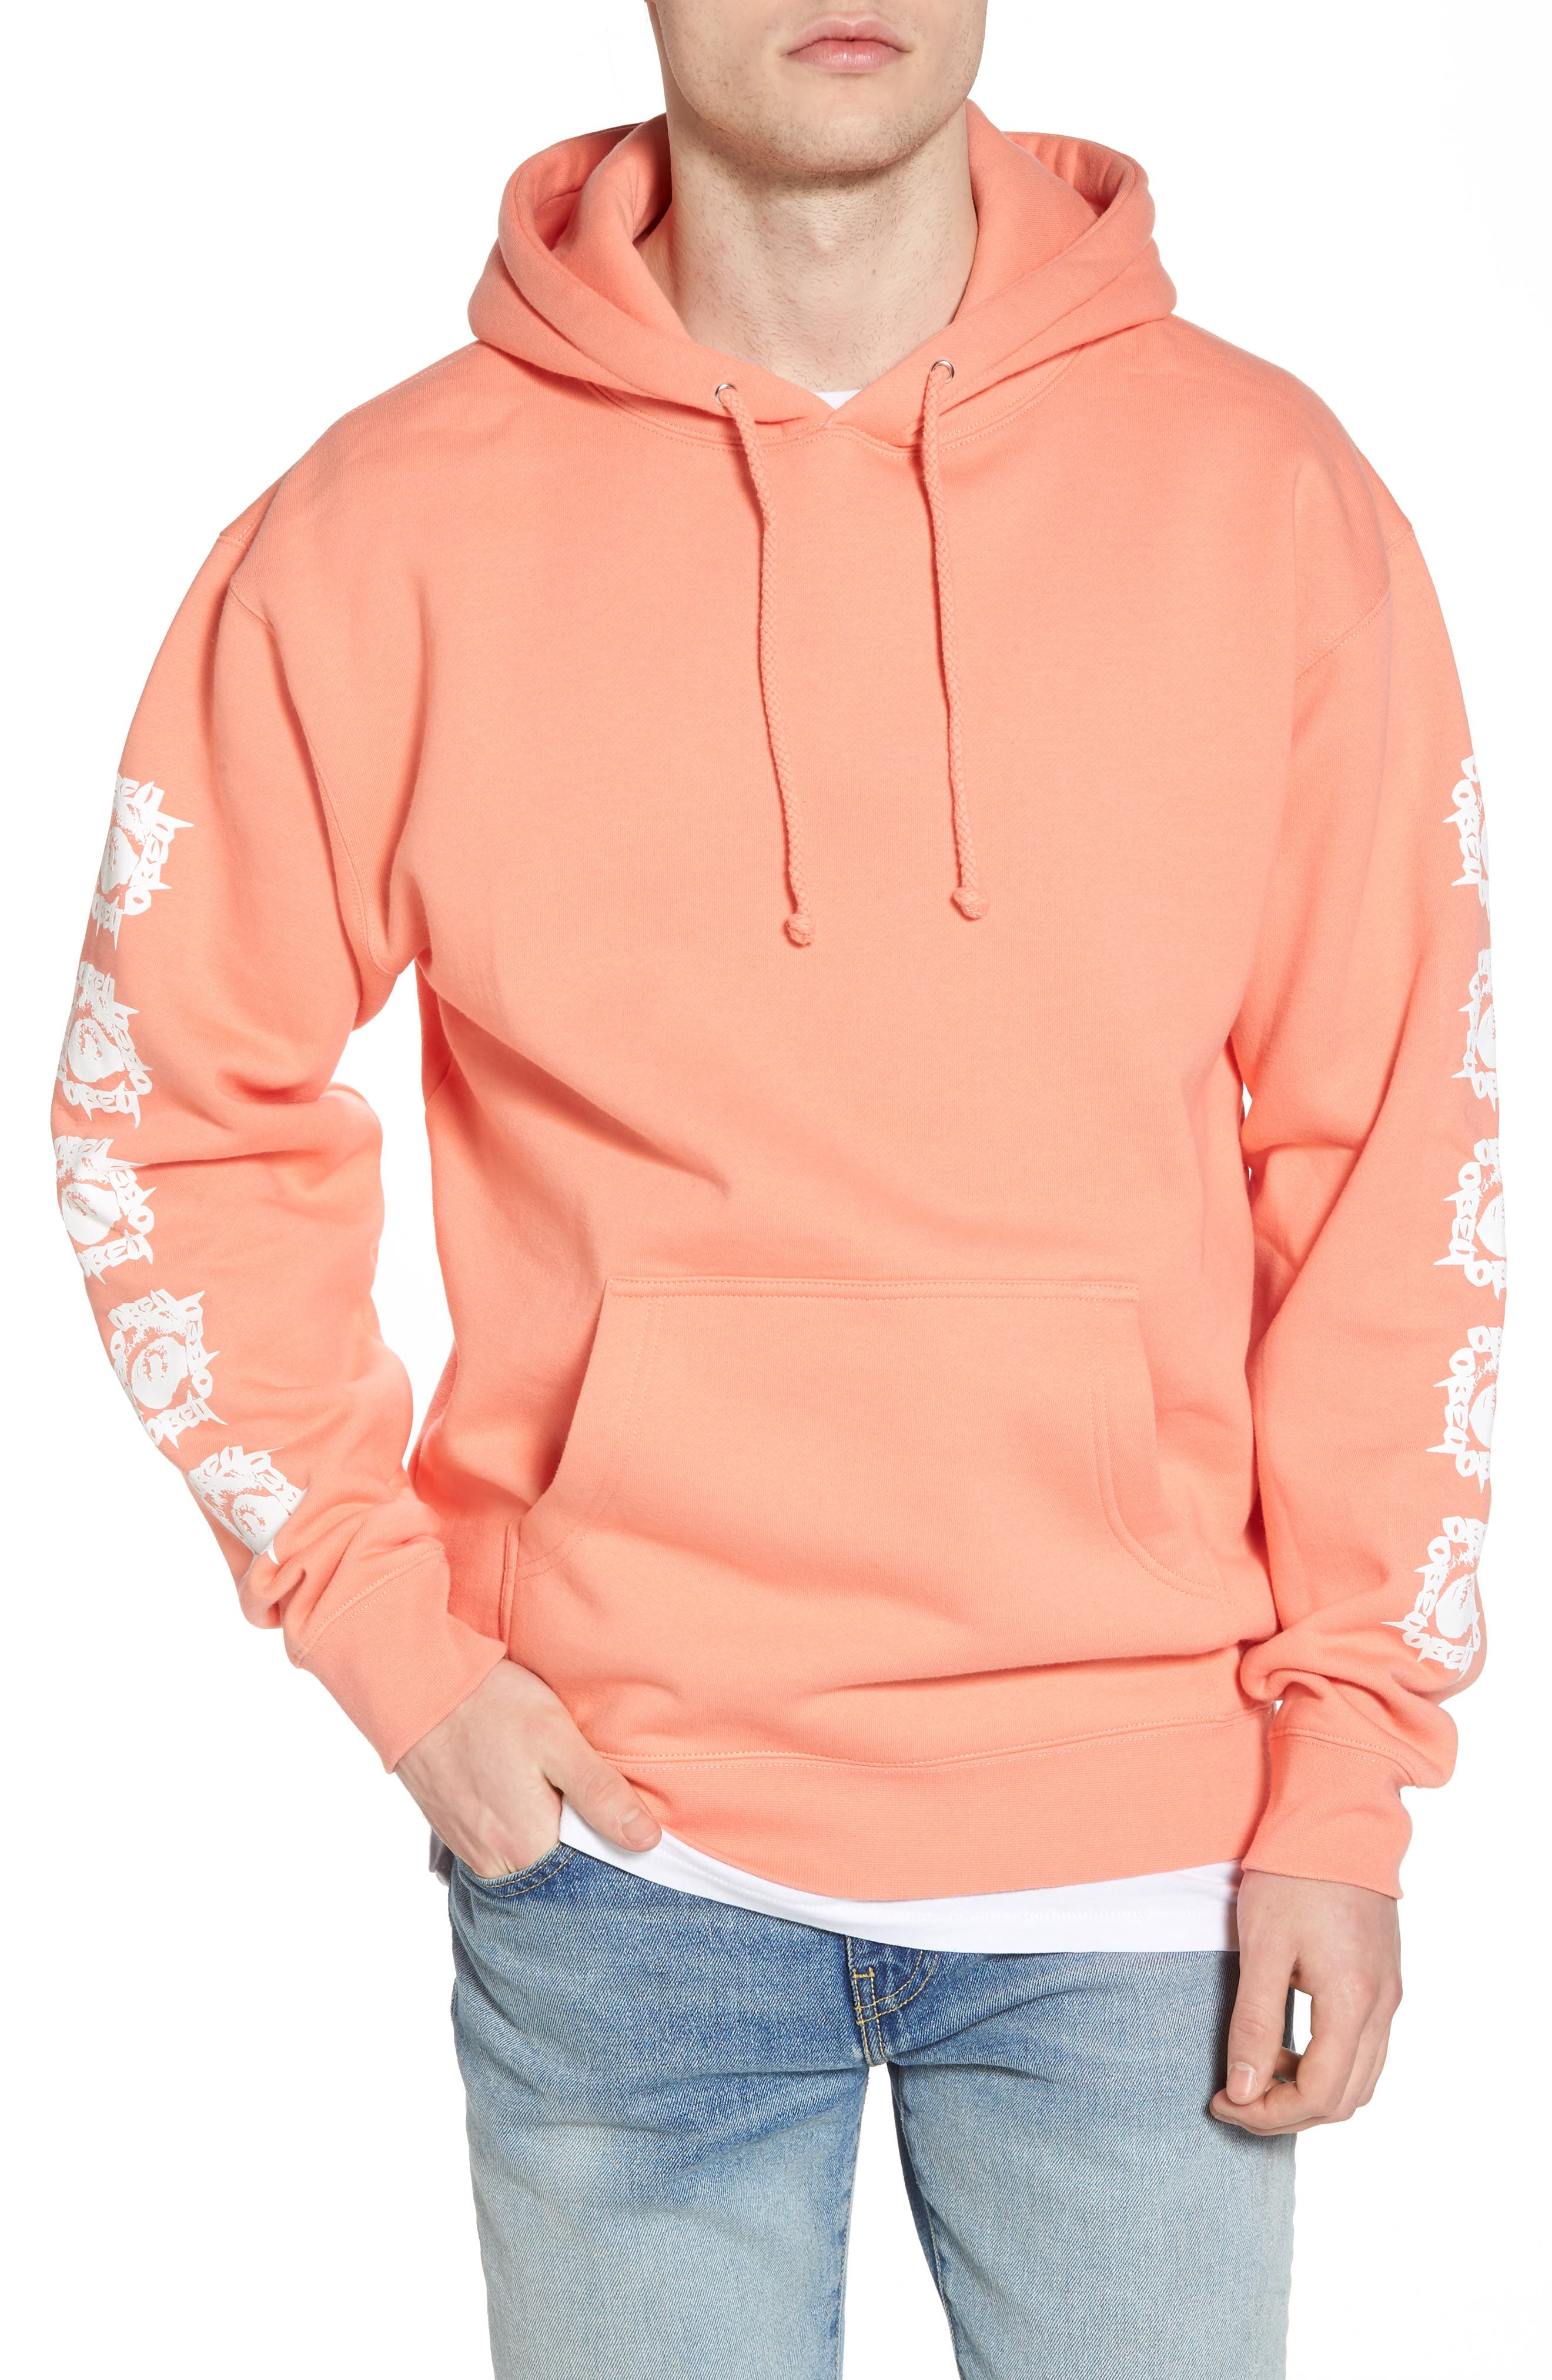 Tunnel Vision Hoodie Sweatshirt,                             Main thumbnail 1, color,                             Coral